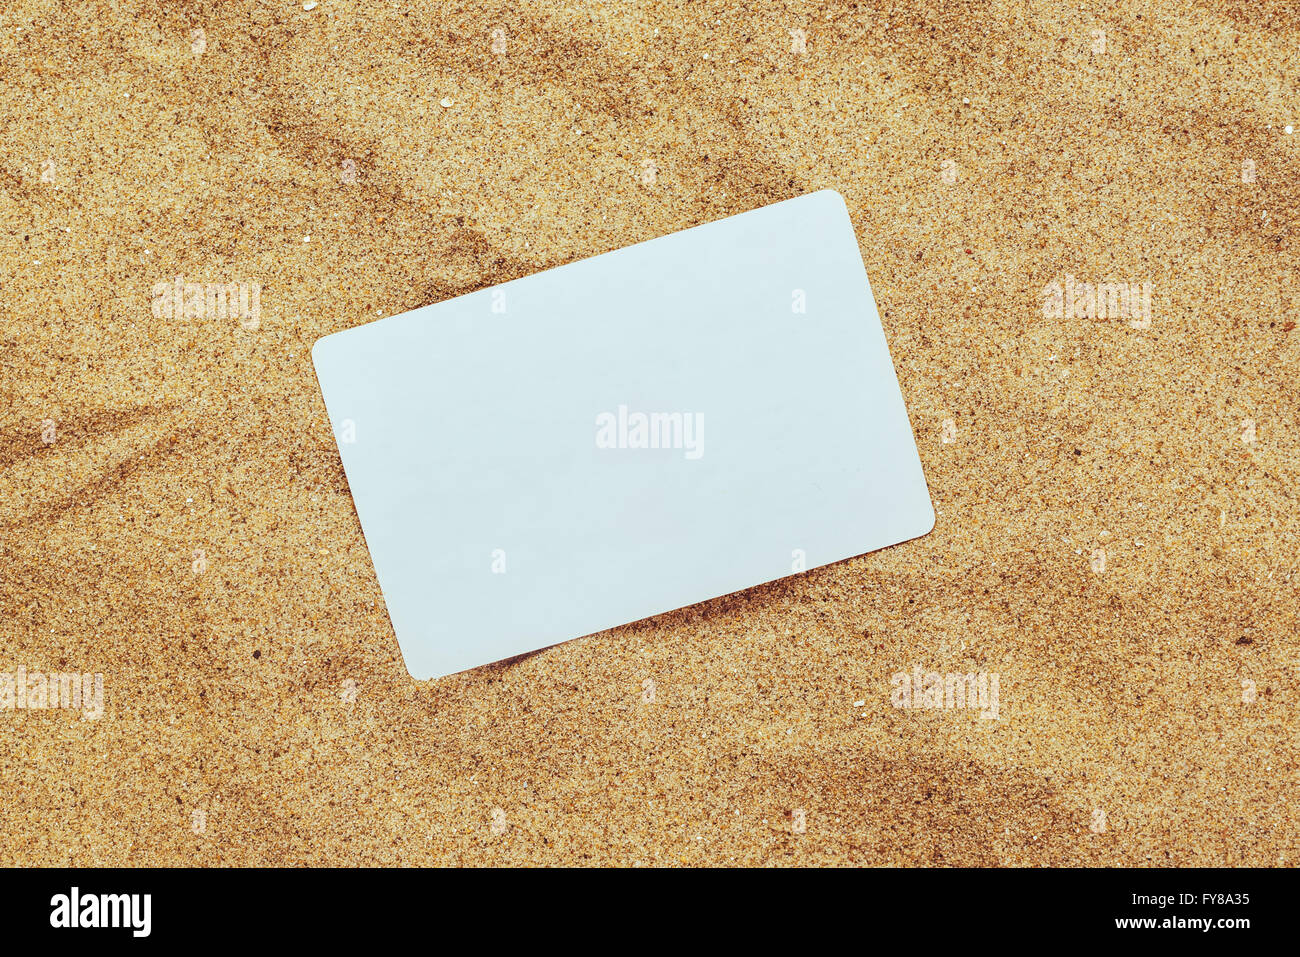 Top view of blank business card in hot beach sand, blank copy ...